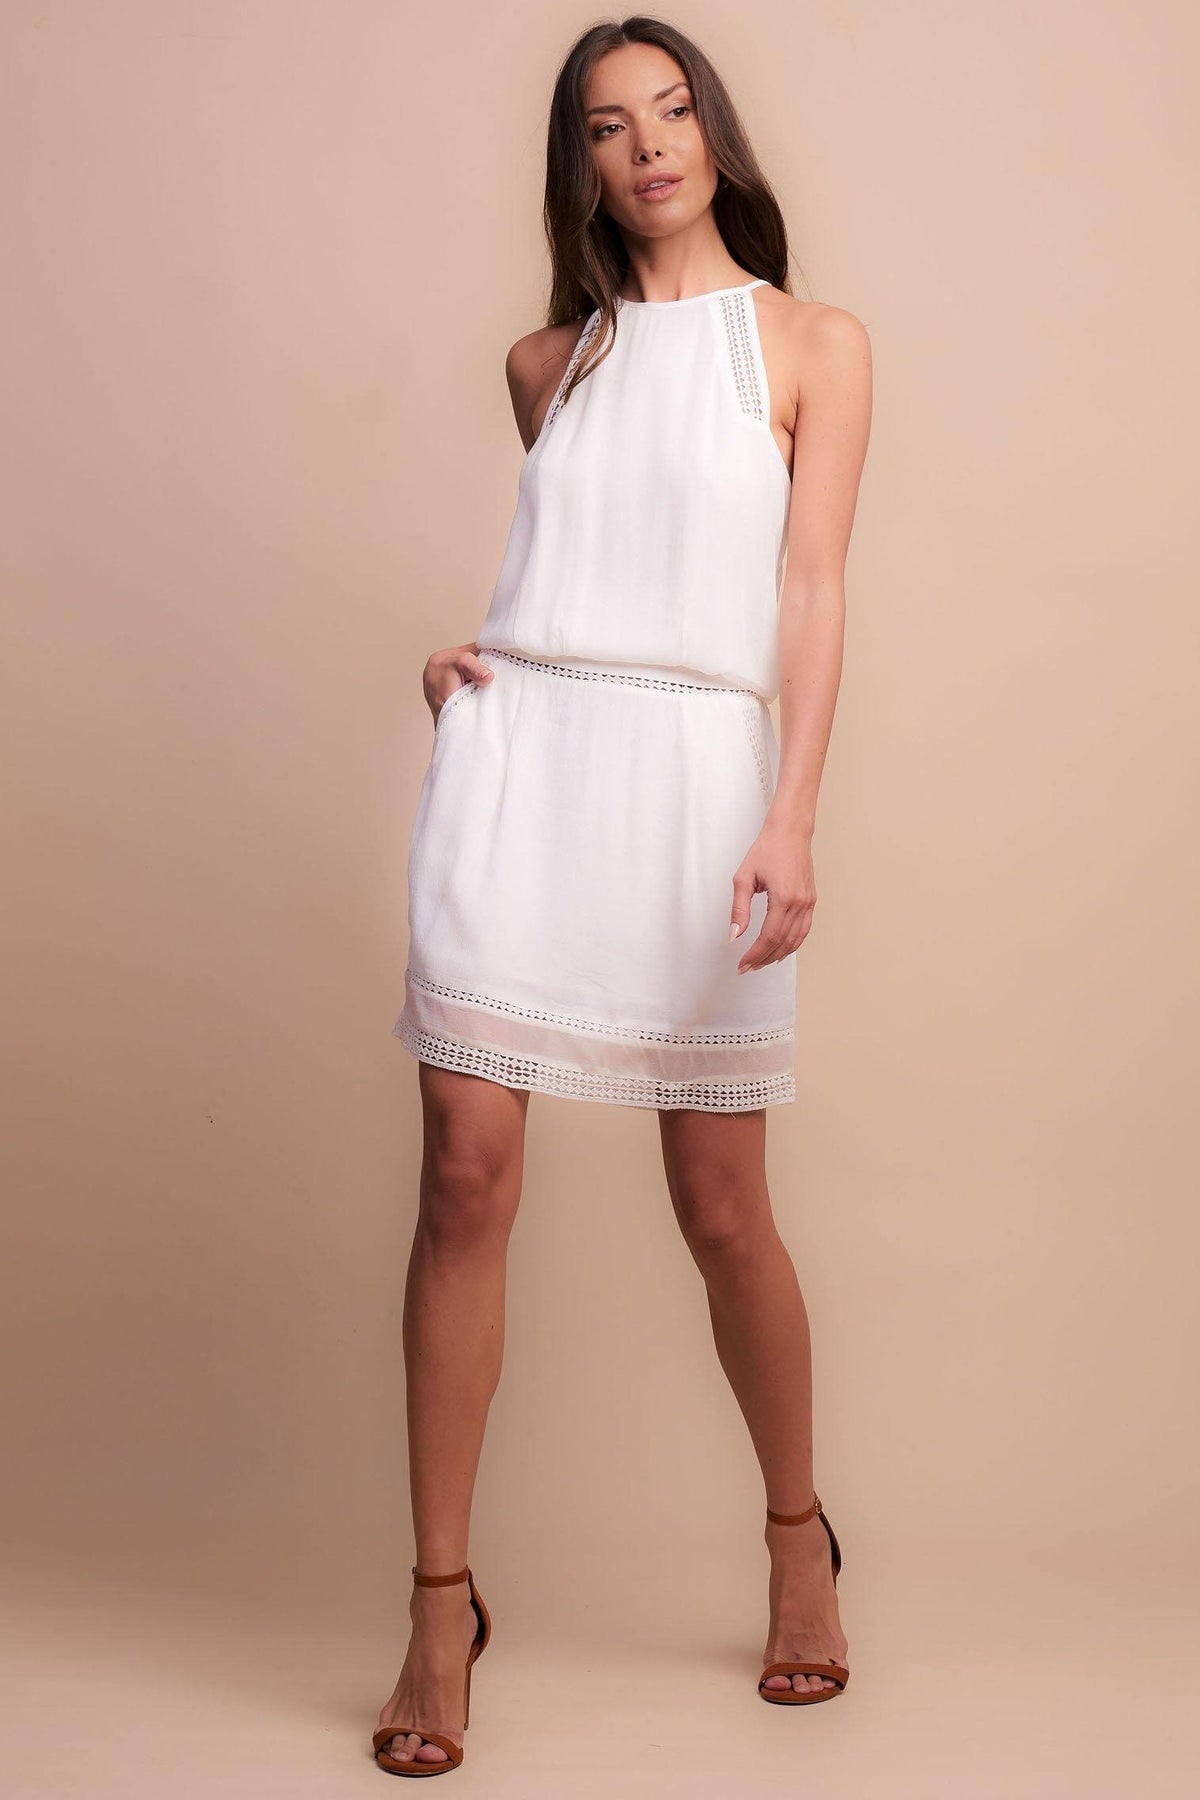 The Aster Dress